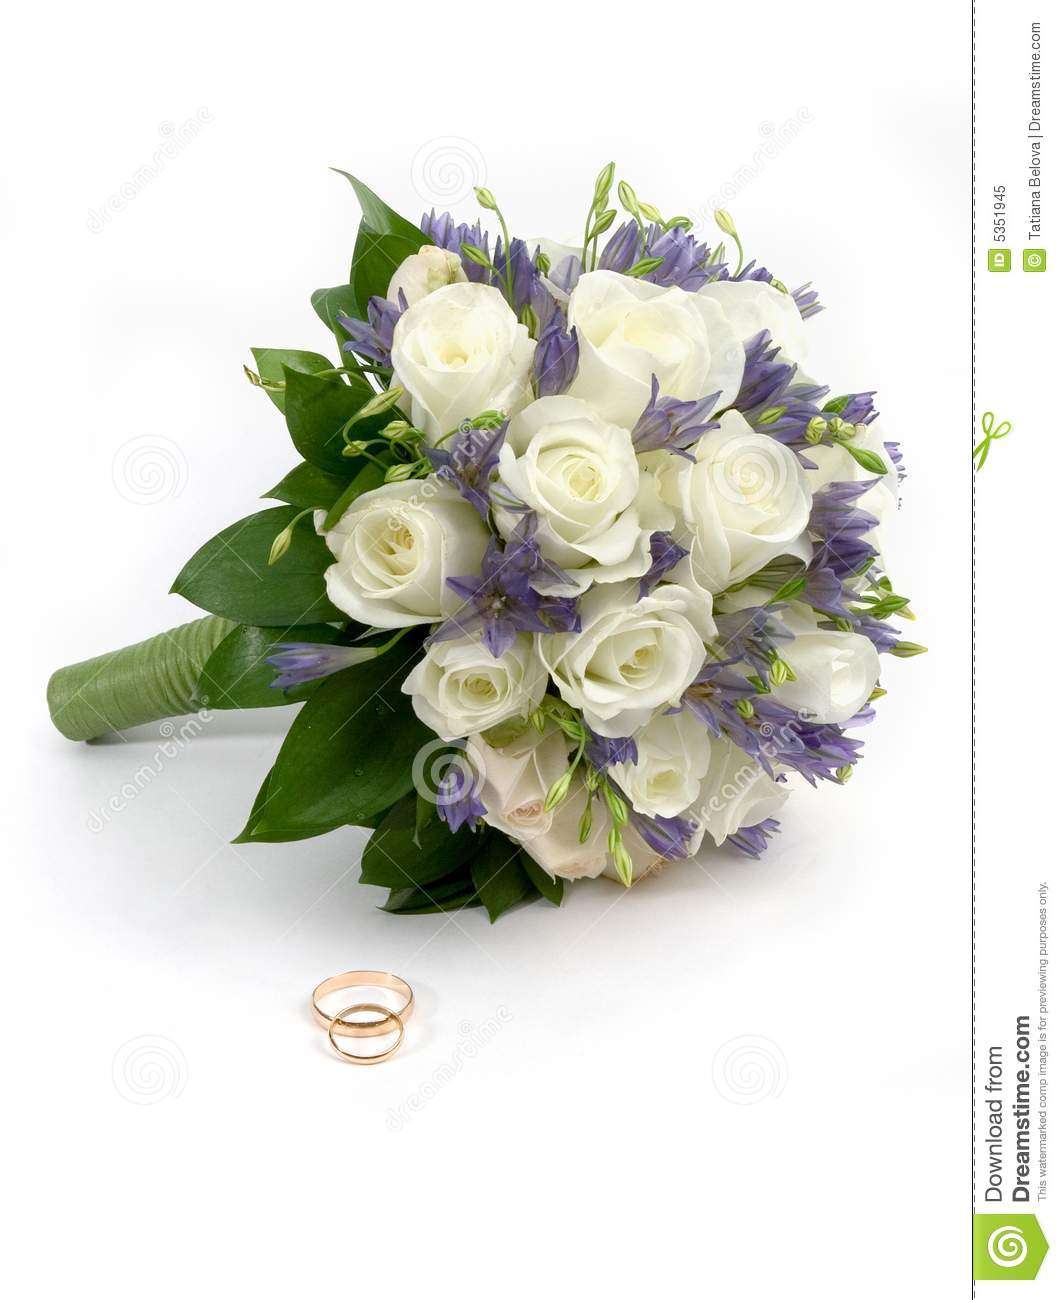 royalty free stock photo wedding bouquet rings image wedding bouquet Wedding bouquet and rings